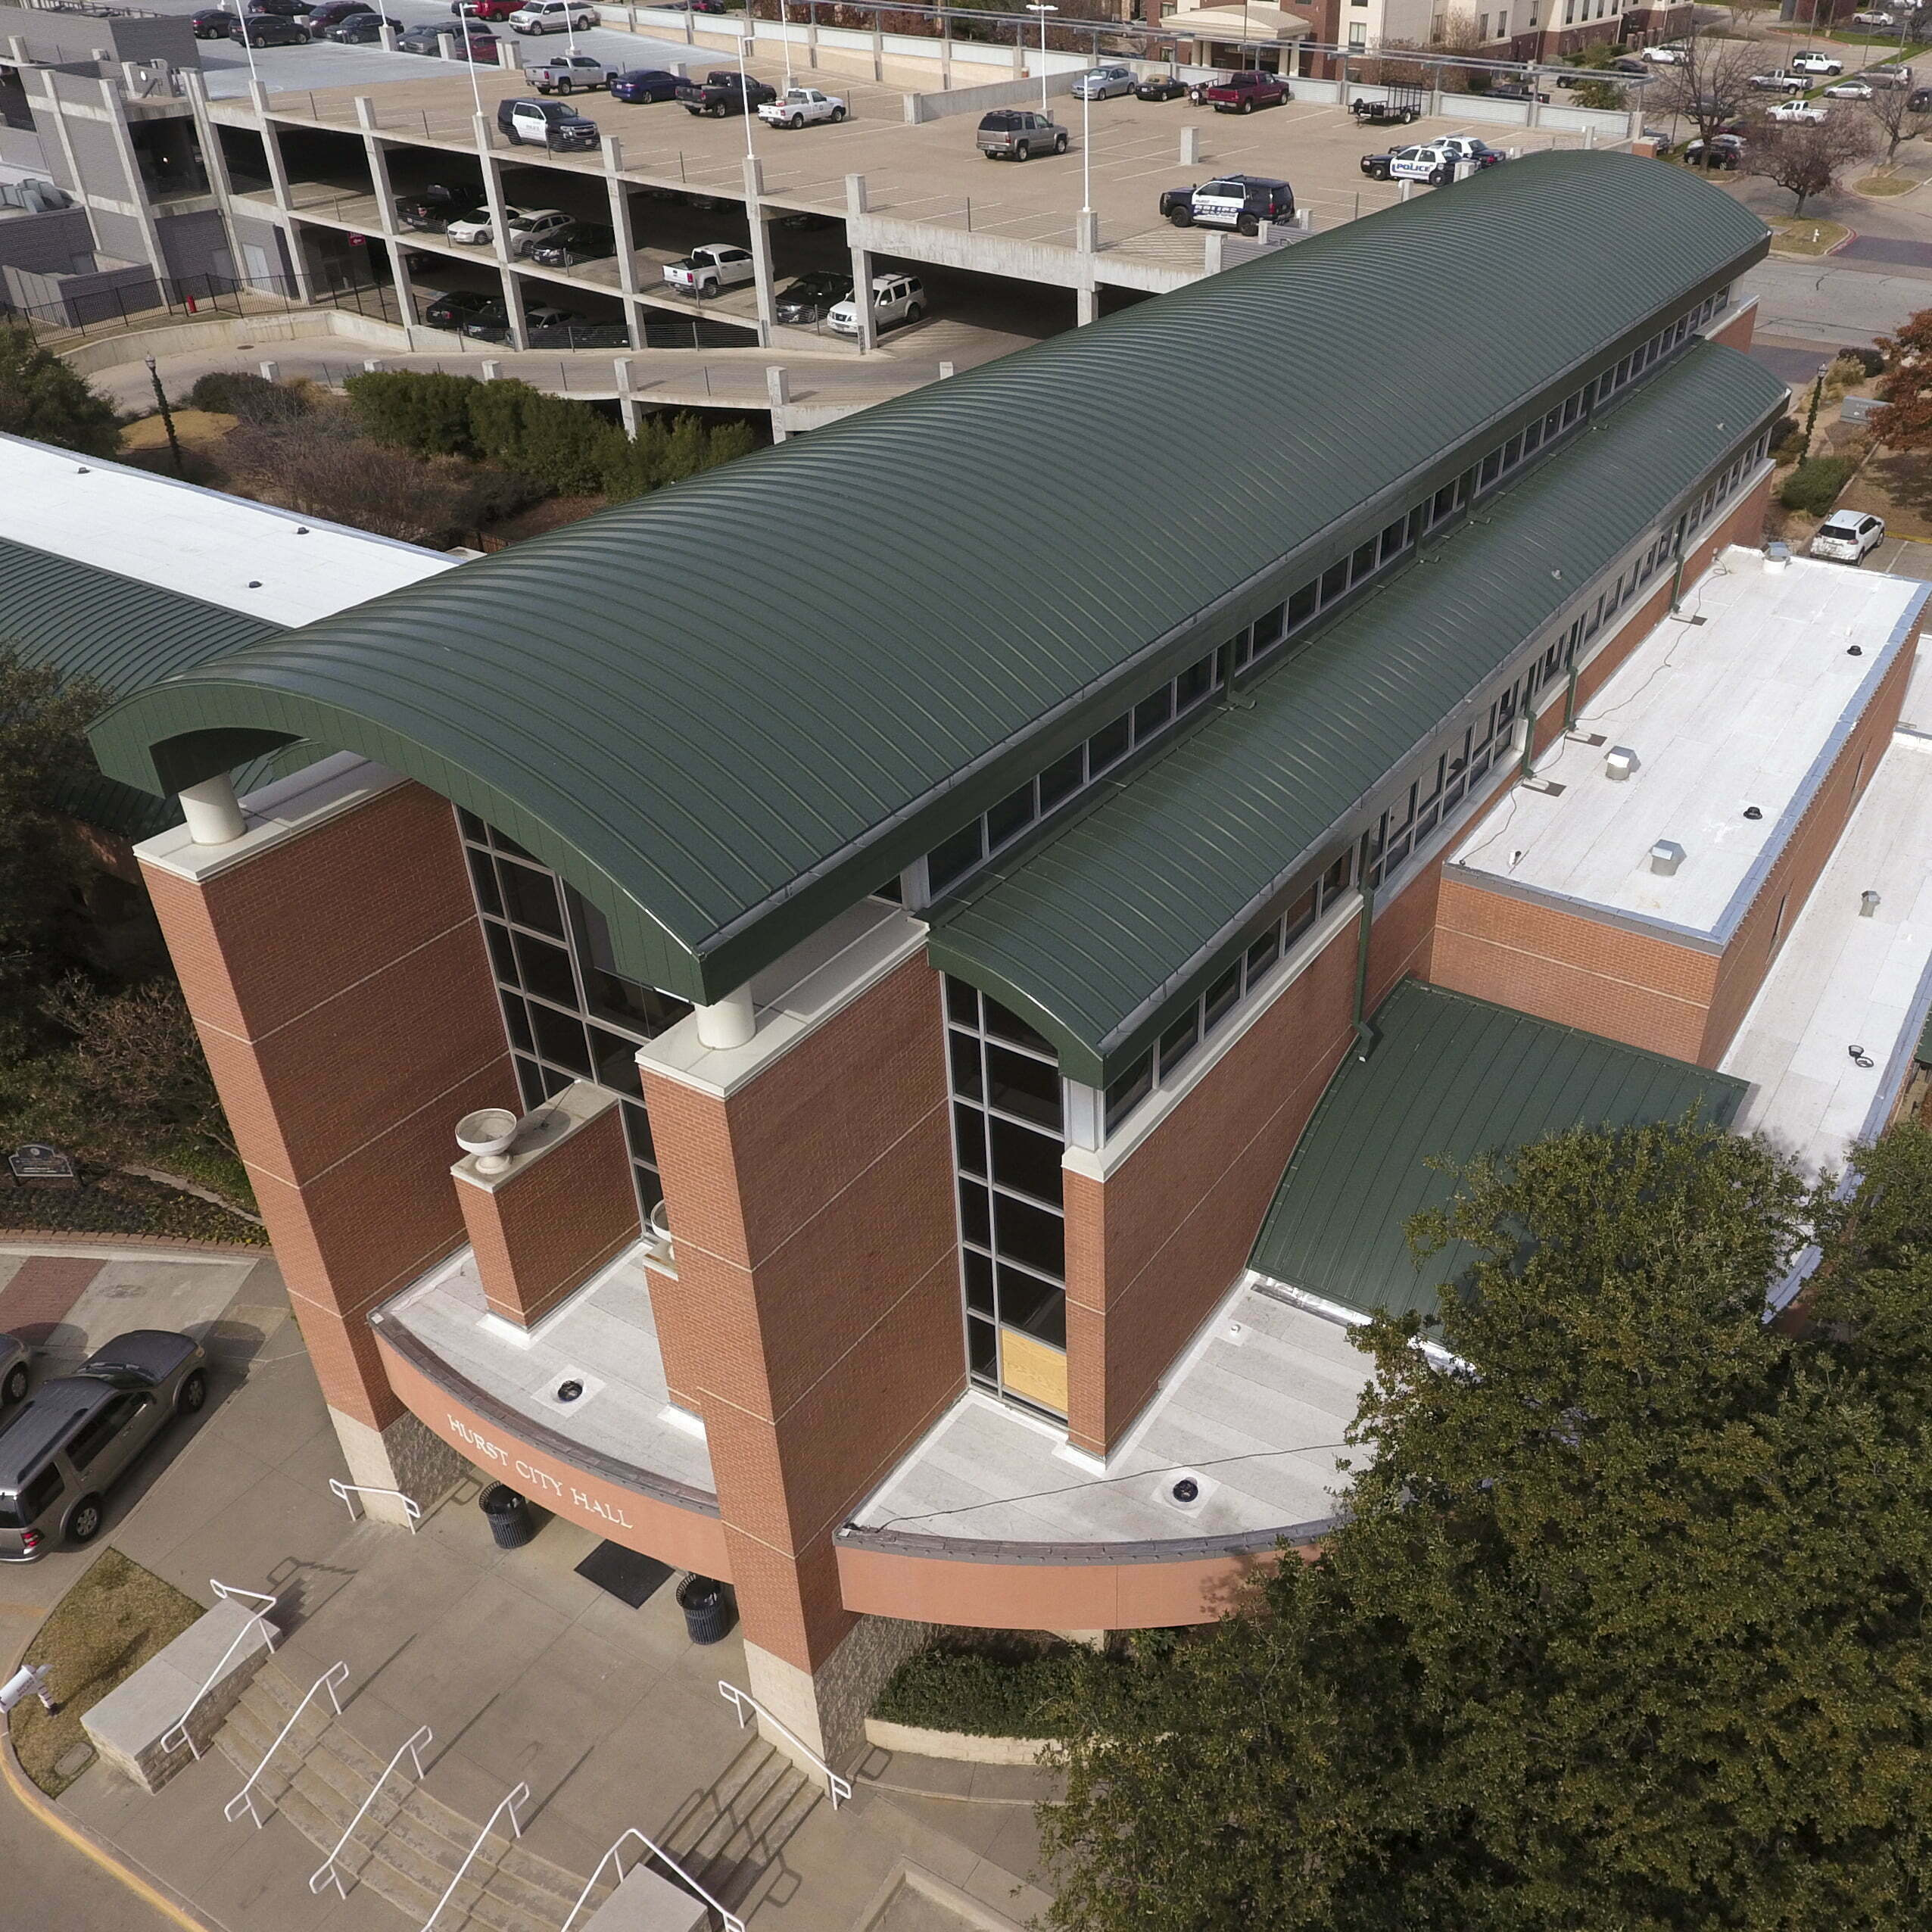 Image shot at the City of Hurst City Hall, Completed Drone Shots 2, Hurst, Texas, December 4, 2019, Jeffrey Parr/Supreme Roofing